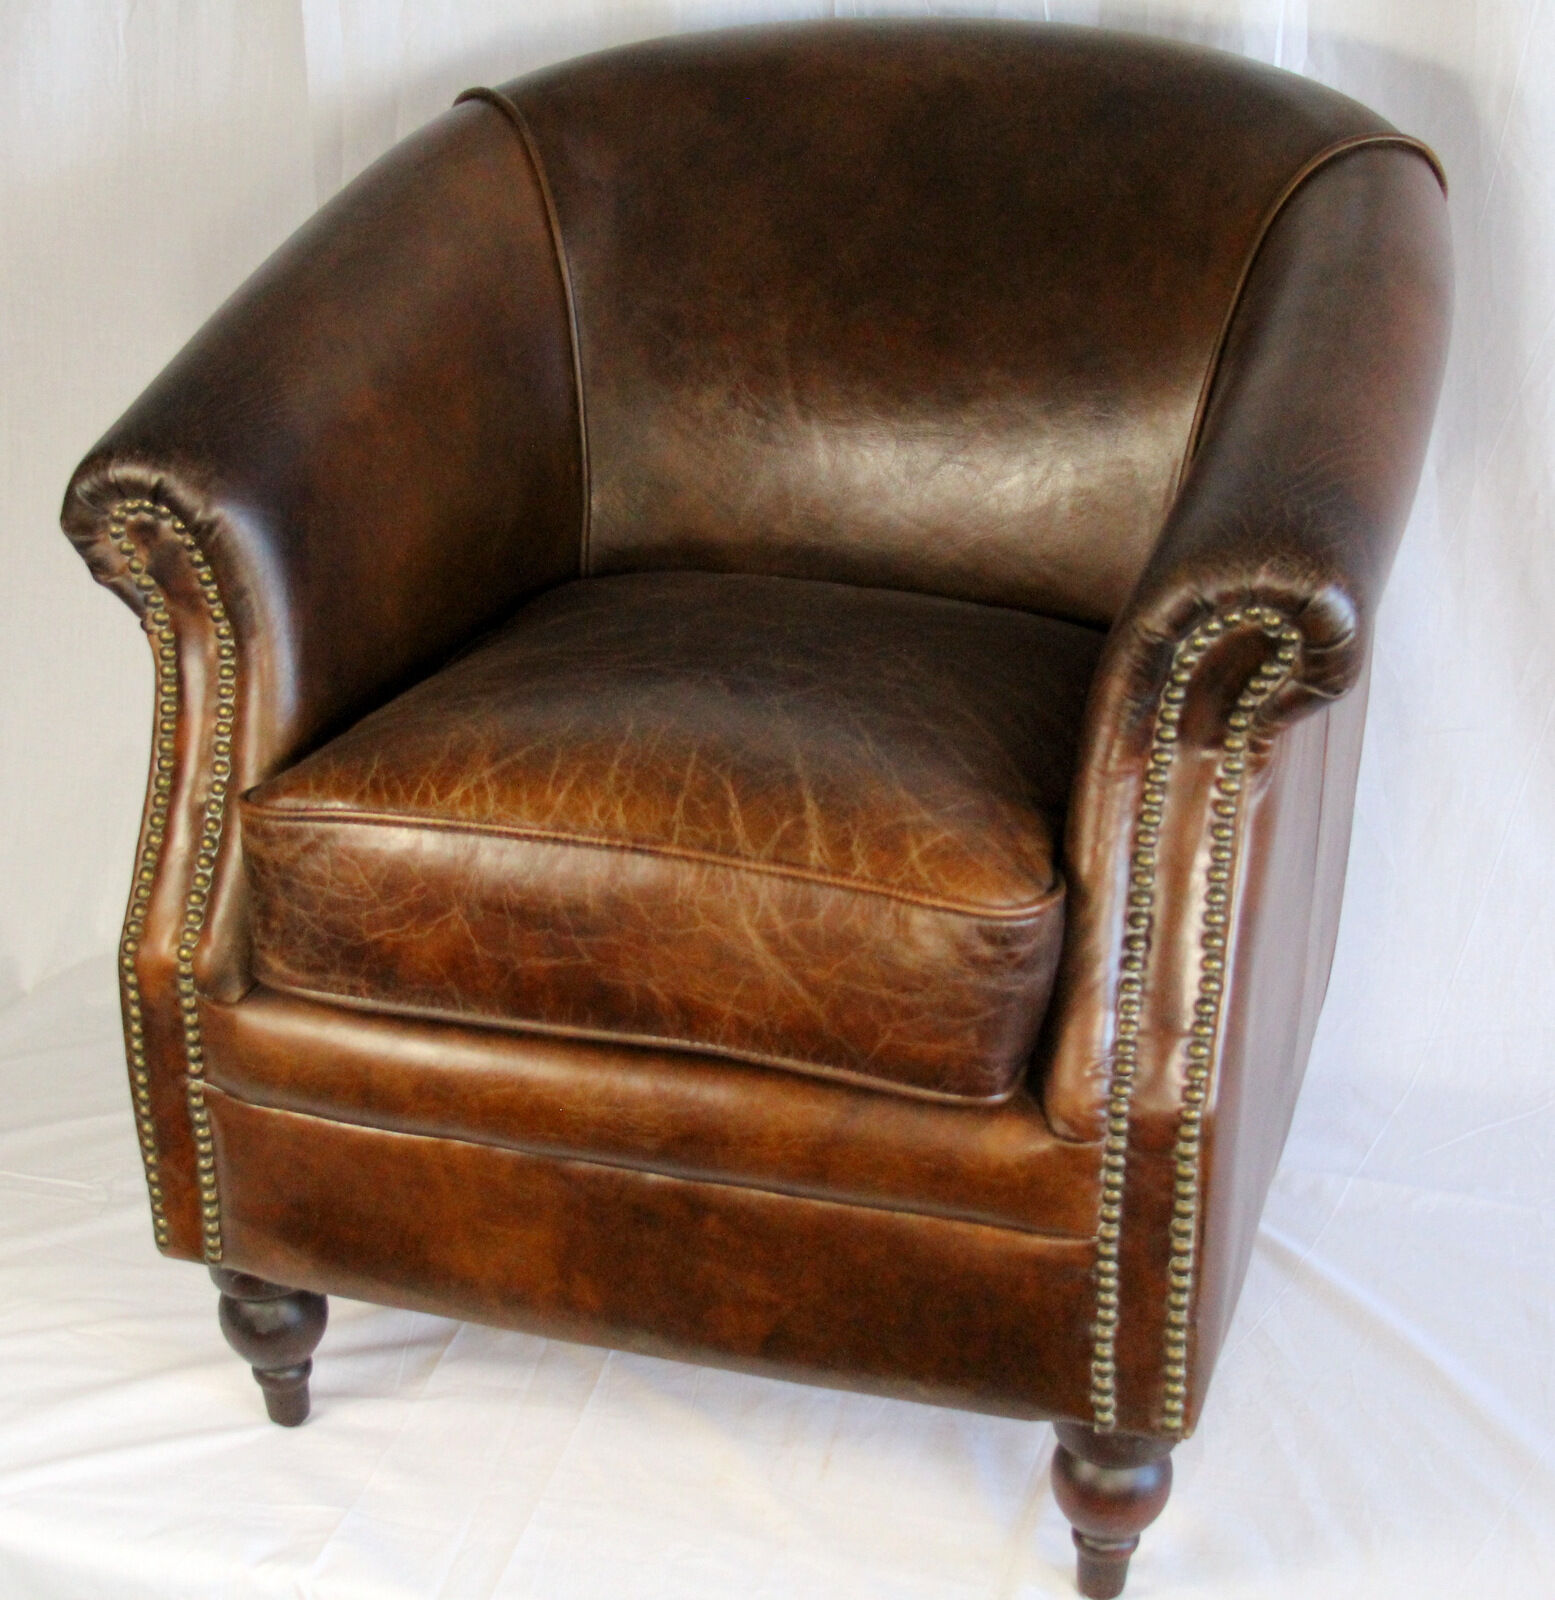 Vintage Club Chairs 27 034 Wide Club Arm Chair Vintage Brown Cigar Italian